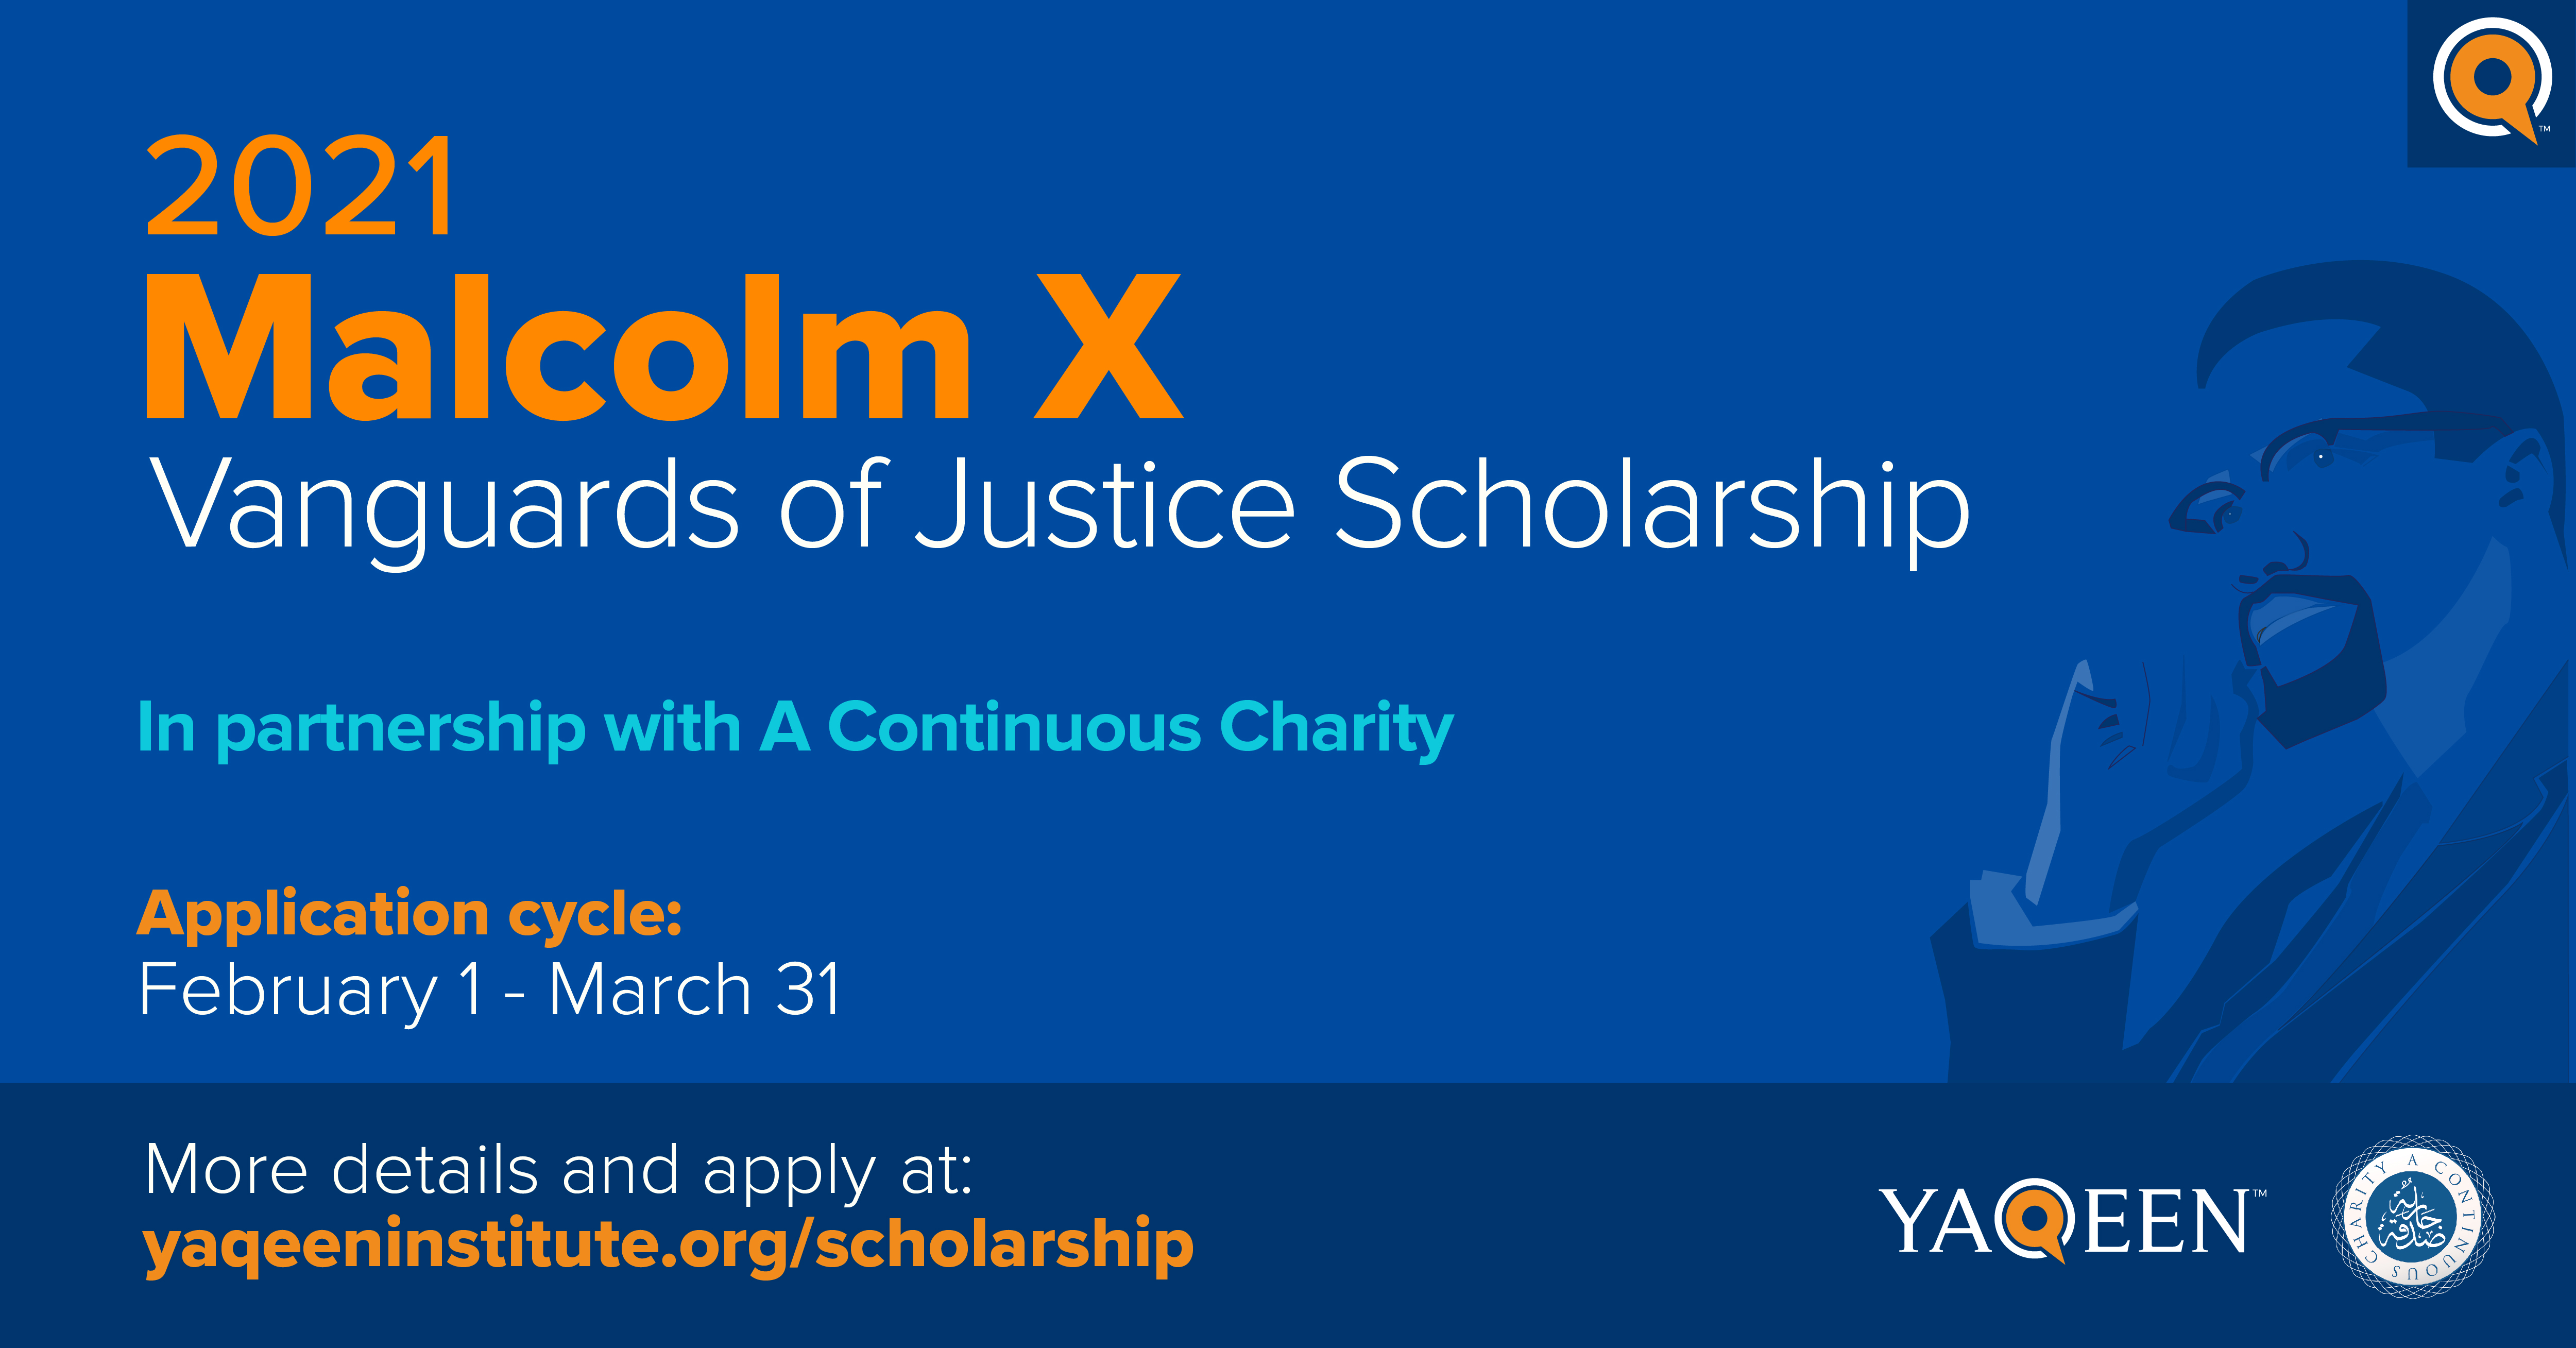 Malcolm X Vanguards of Justice Scholarship